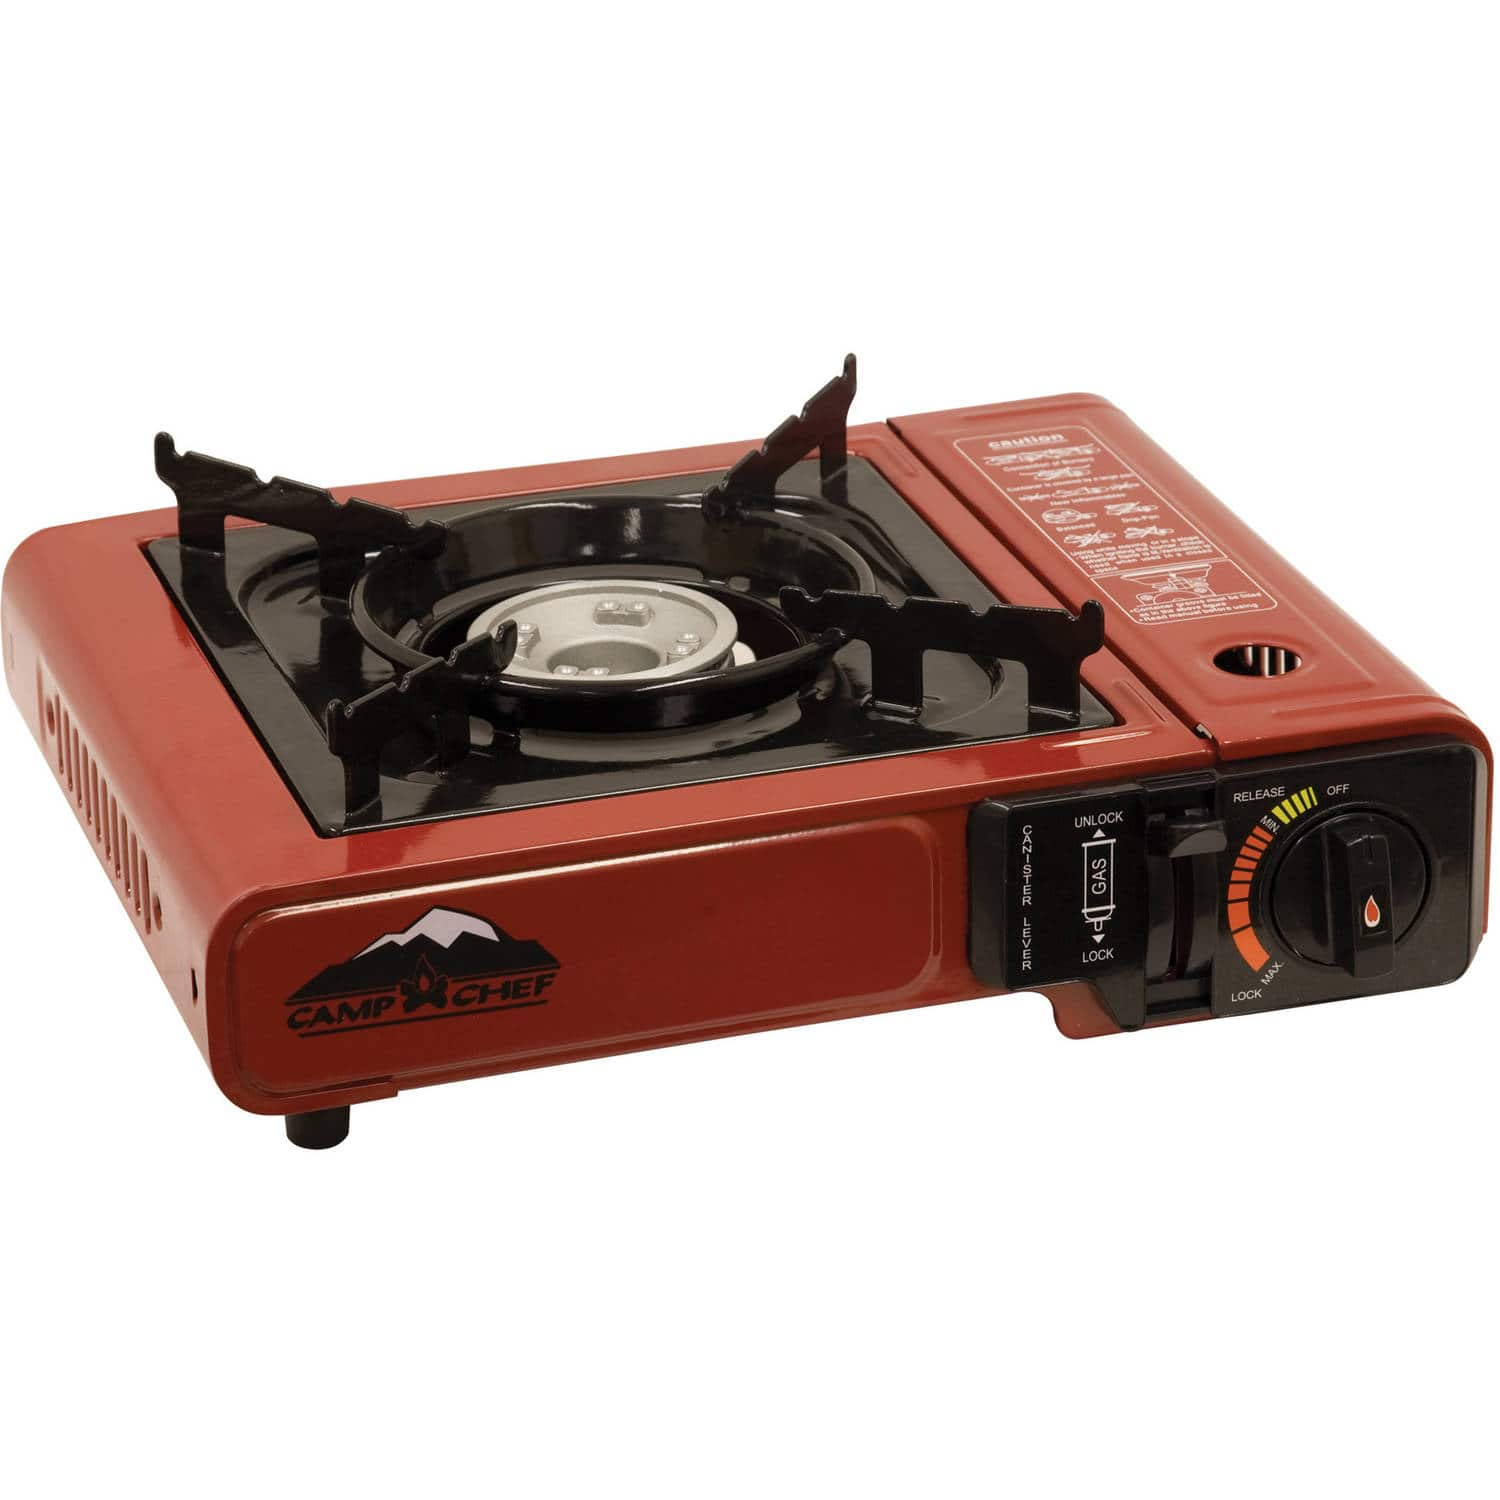 Camp Chef Butane Matchless Ignition Single Burner Camp Stove $17.31